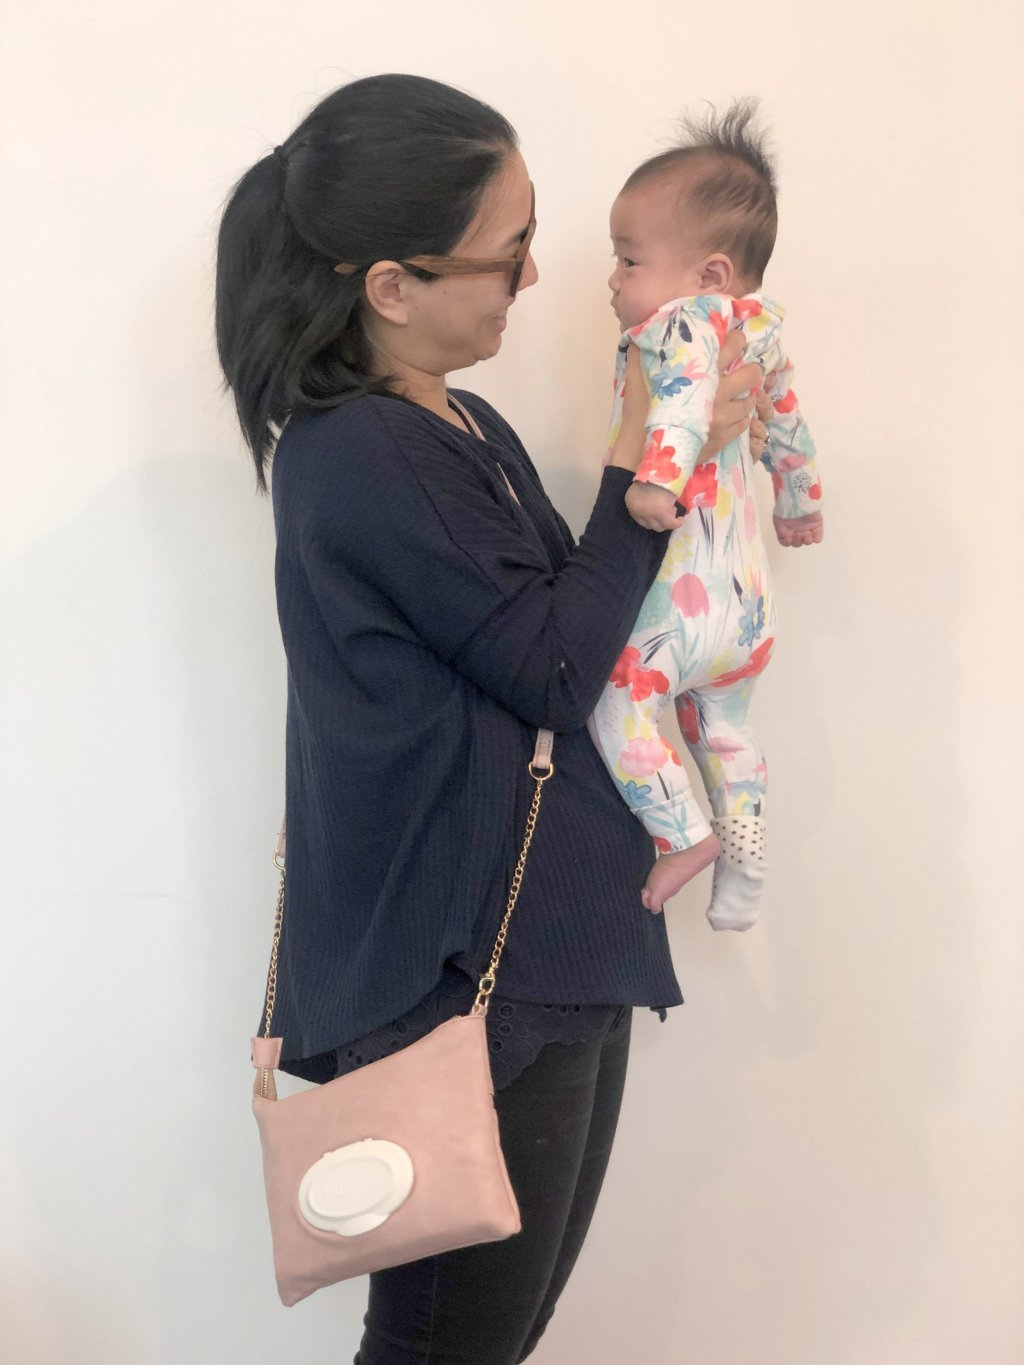 Alicia with Ava wearing the bag